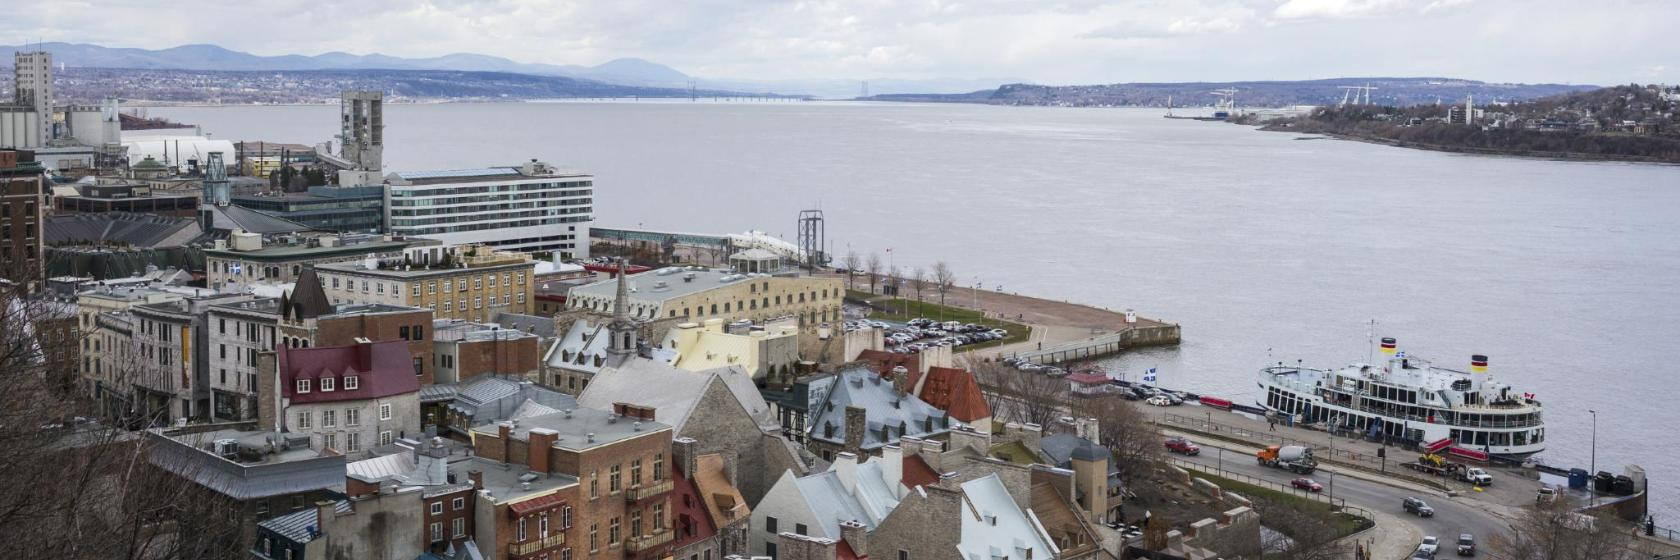 The 10 best hotels in Old Quebec, Quebec City, Canada